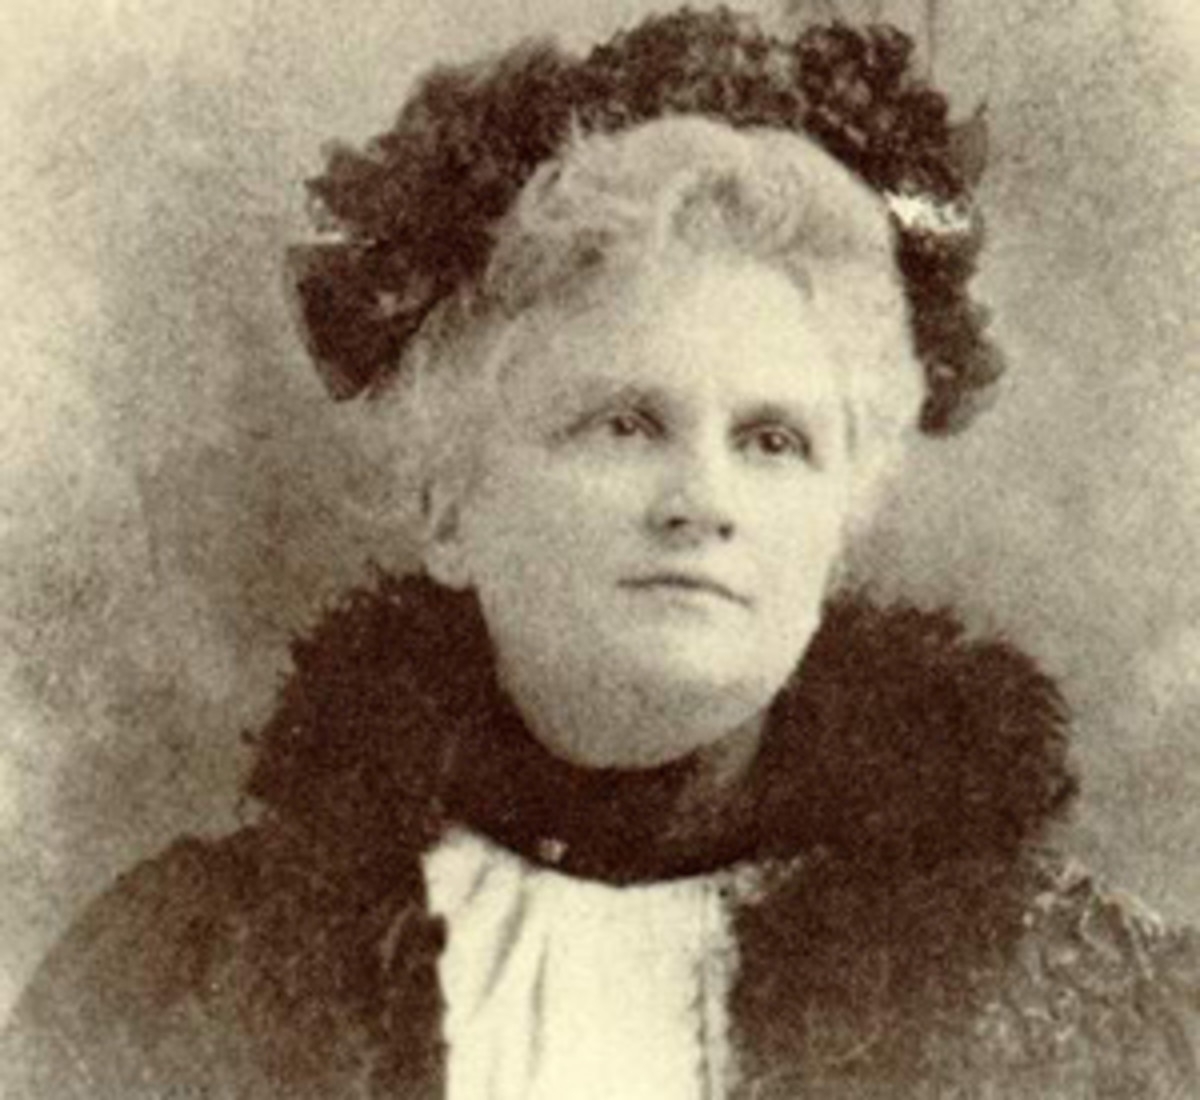 Author Kate Chopin later in life